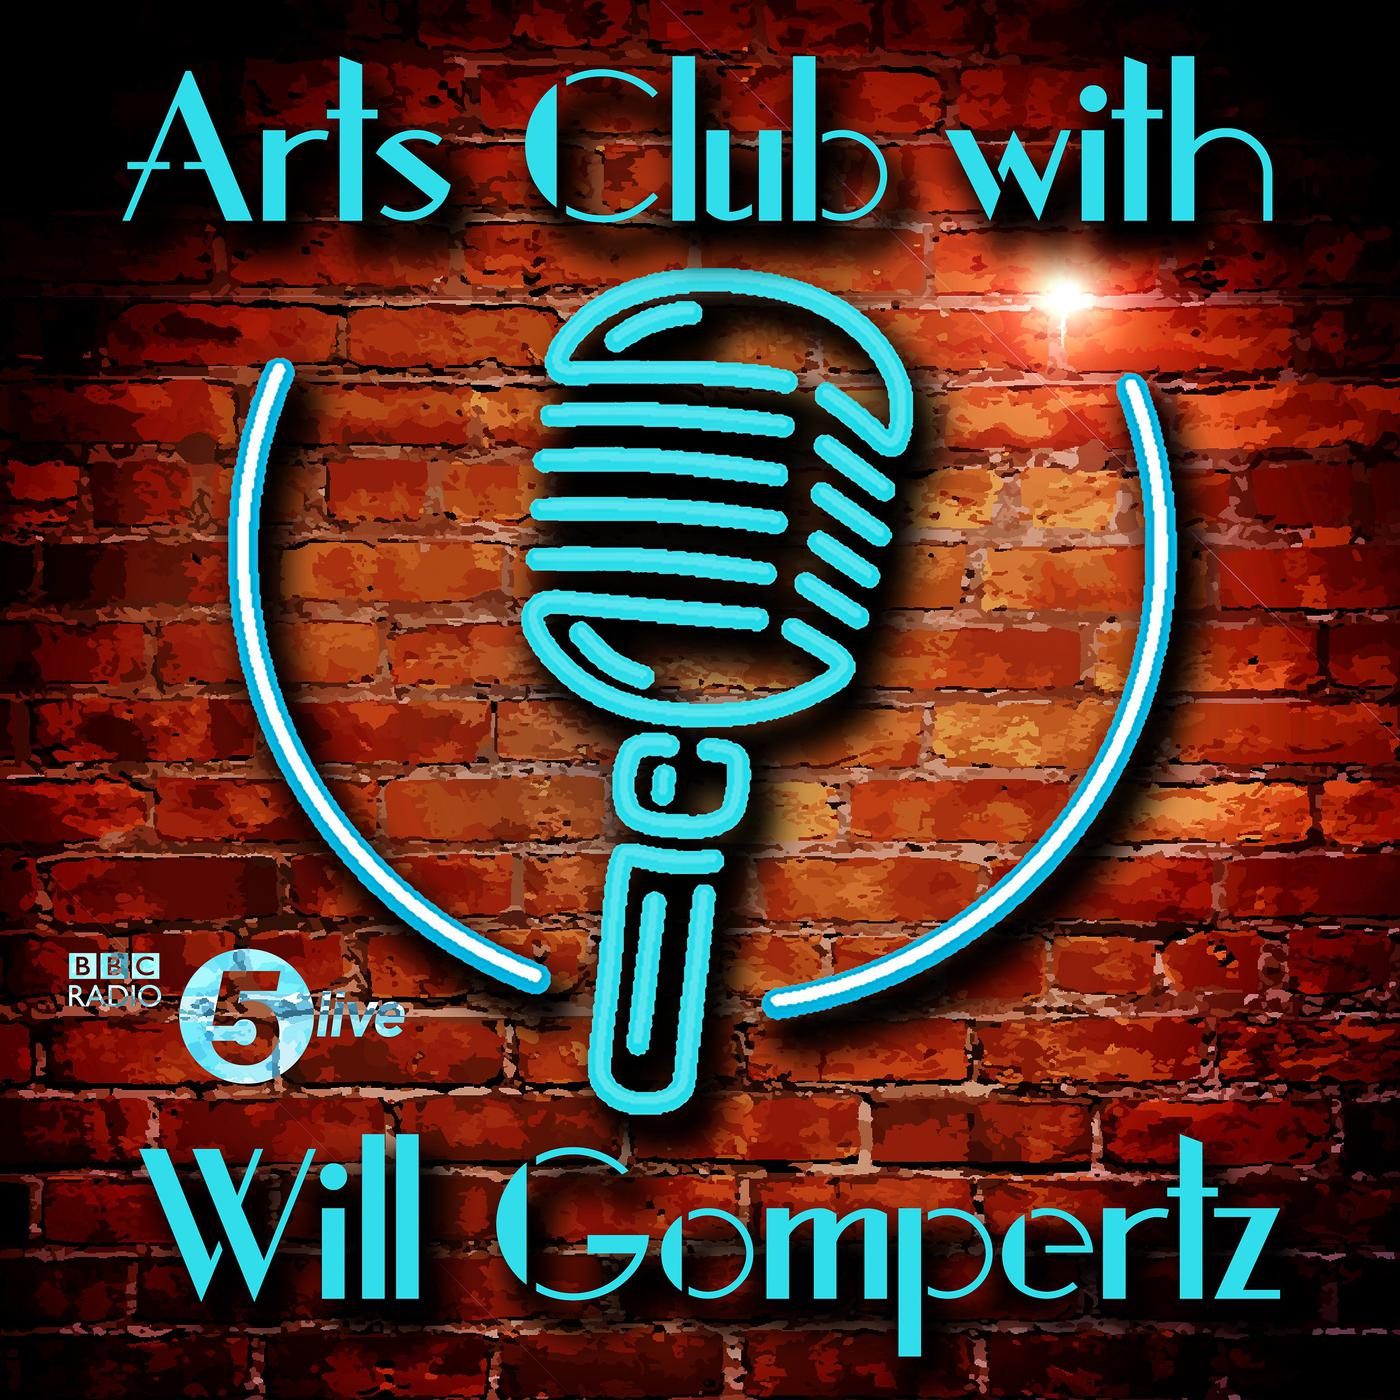 Arts Club with Will Gompertz (podcast) - BBC Radio 5 live | Listen Notes